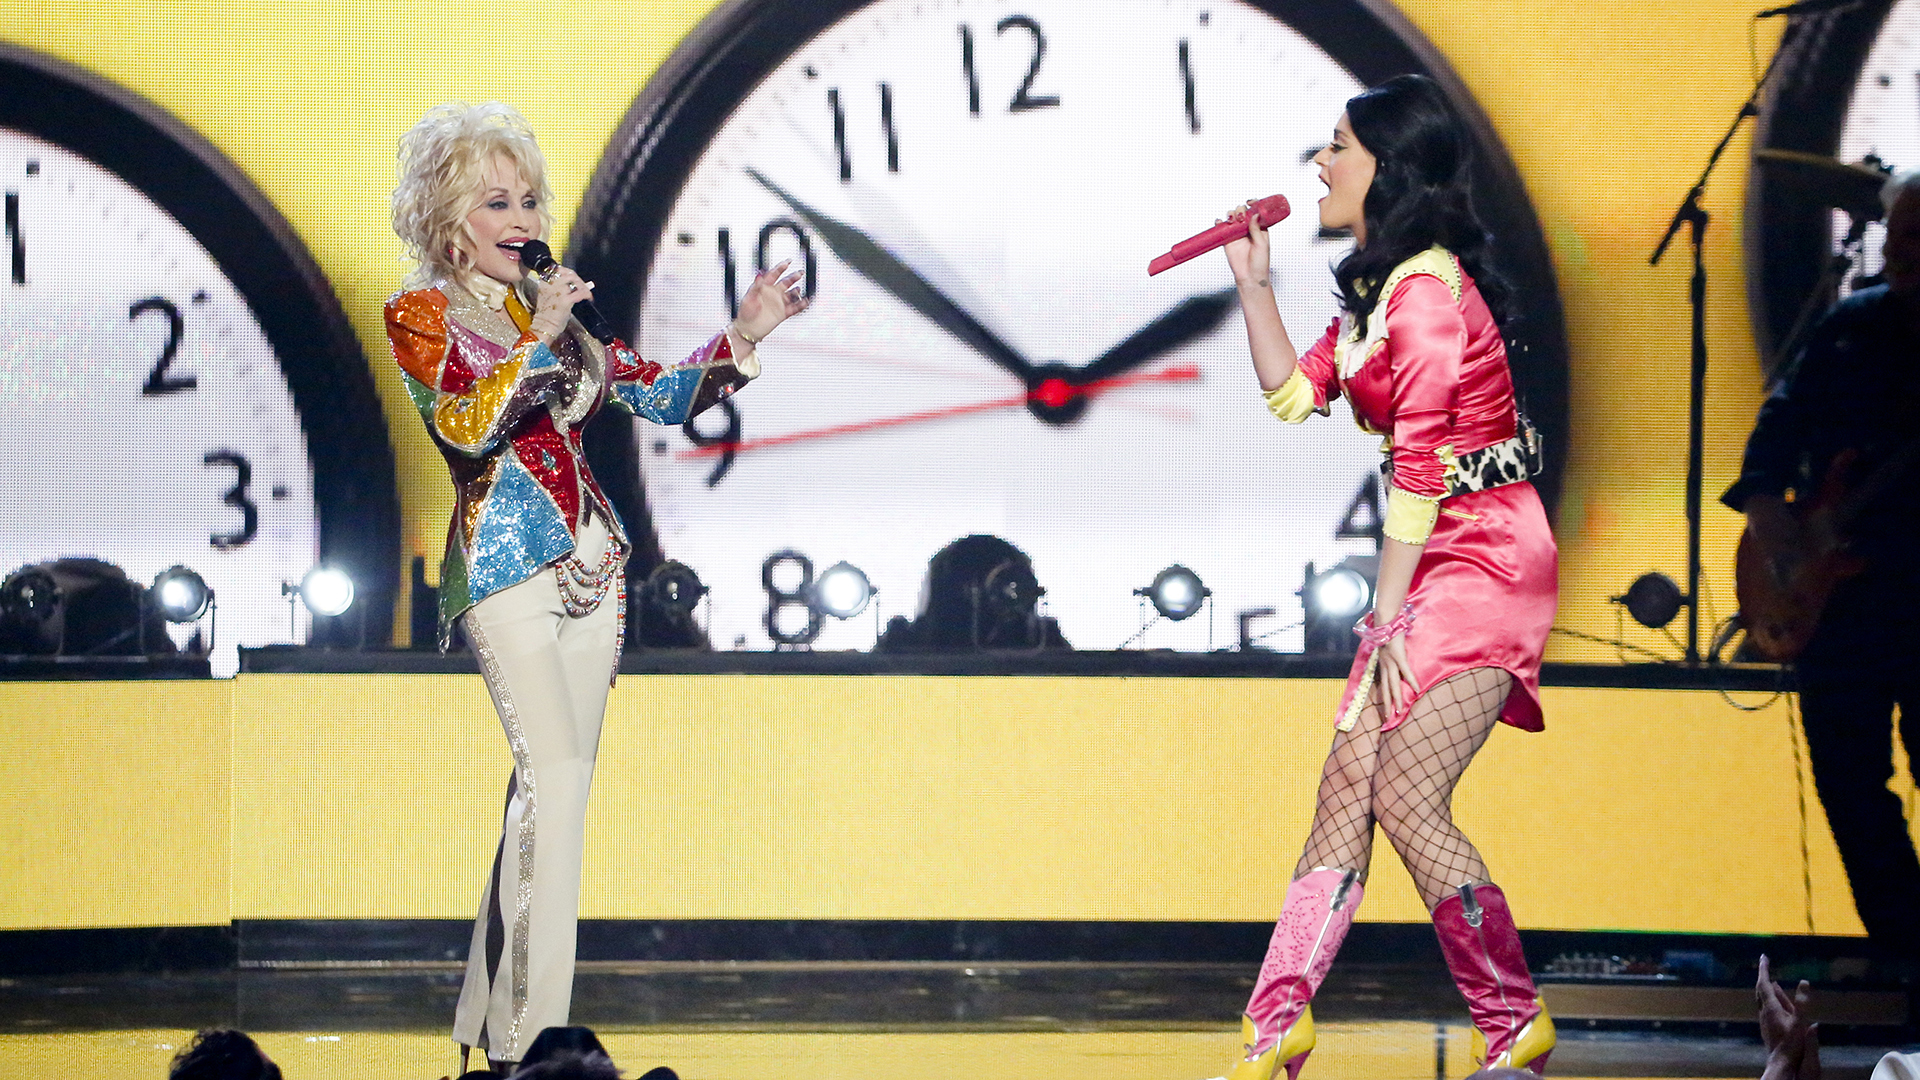 12. Dolly Parton and Katy Perry perform